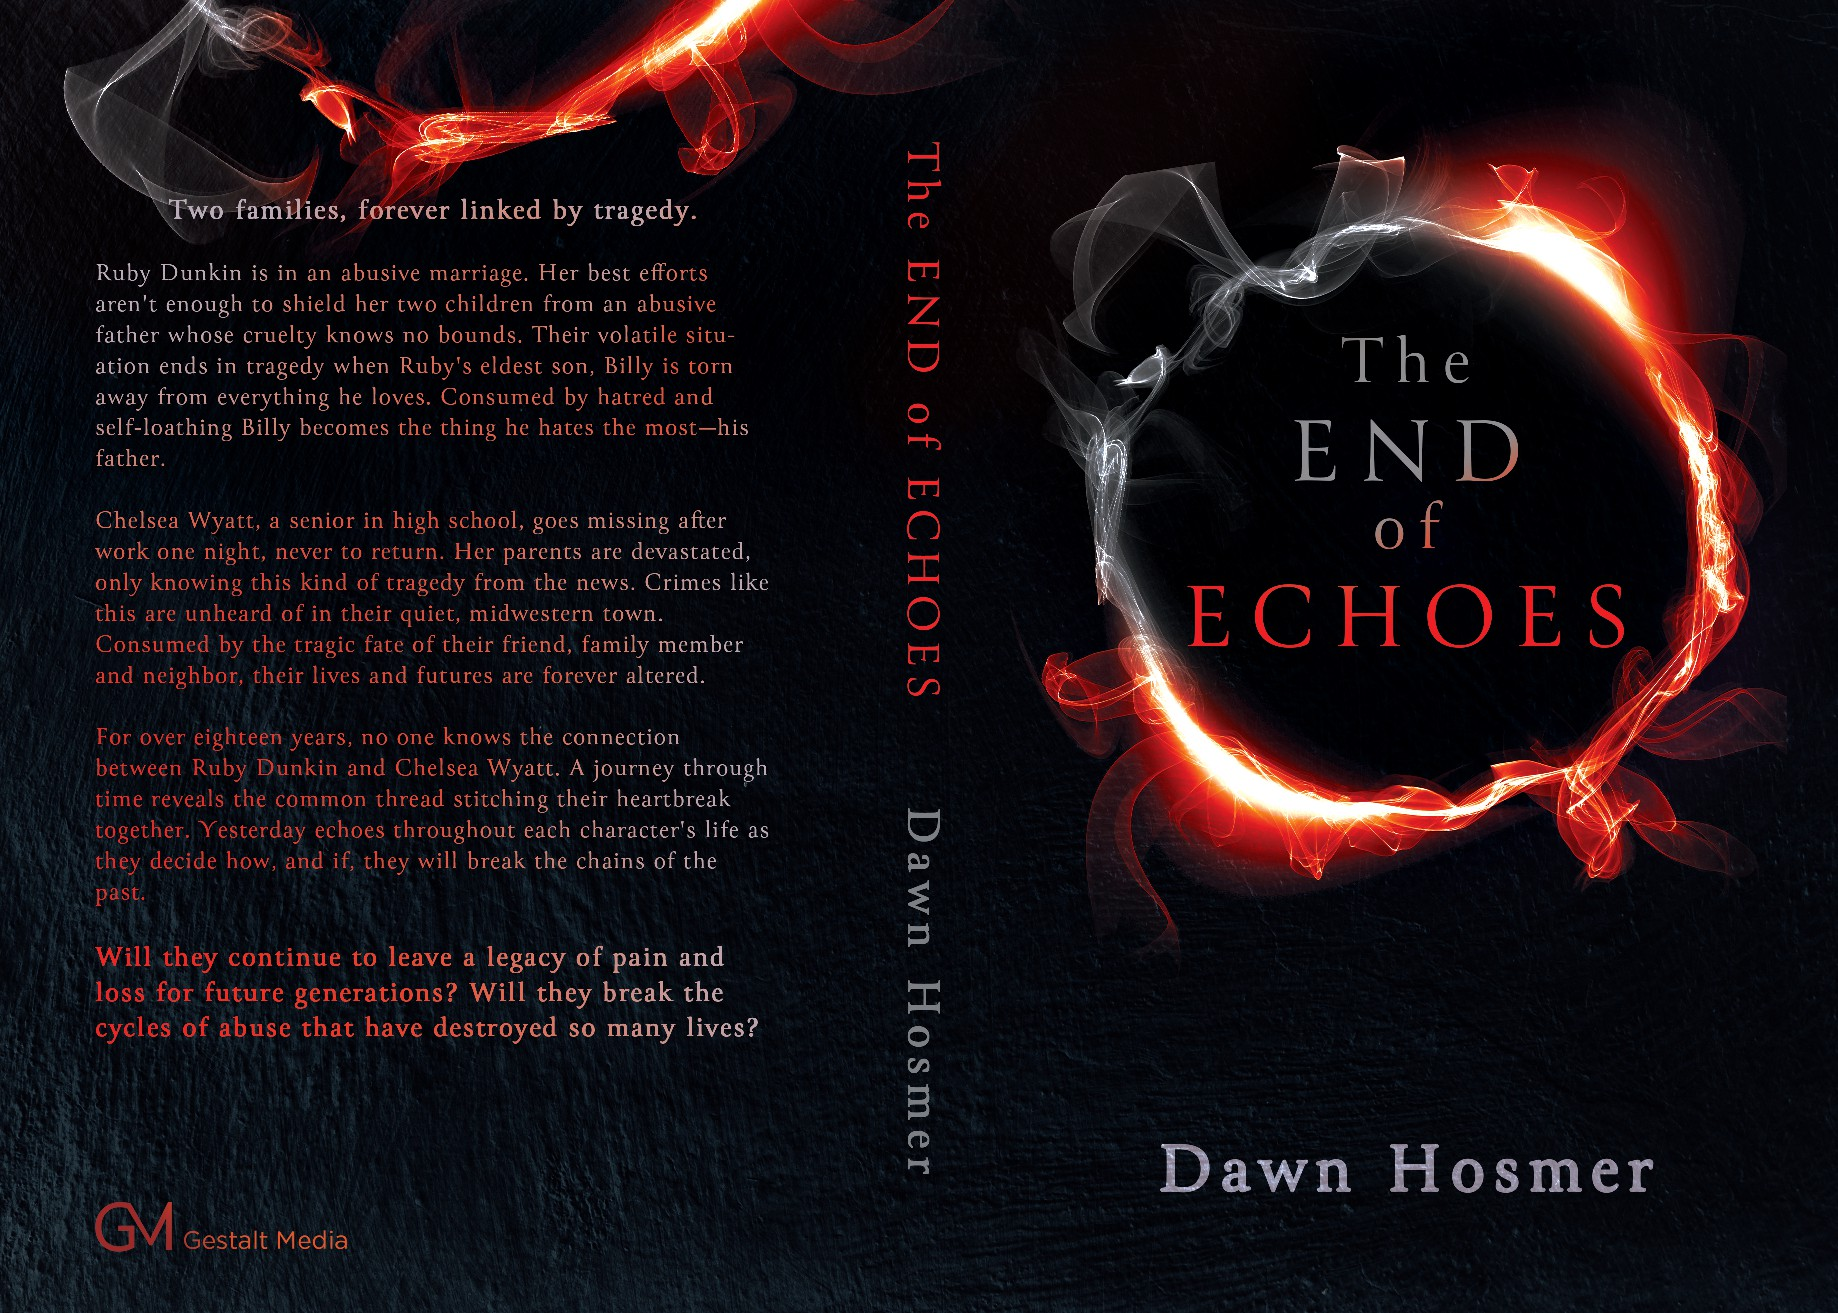 The End of Echoes - Book Cover